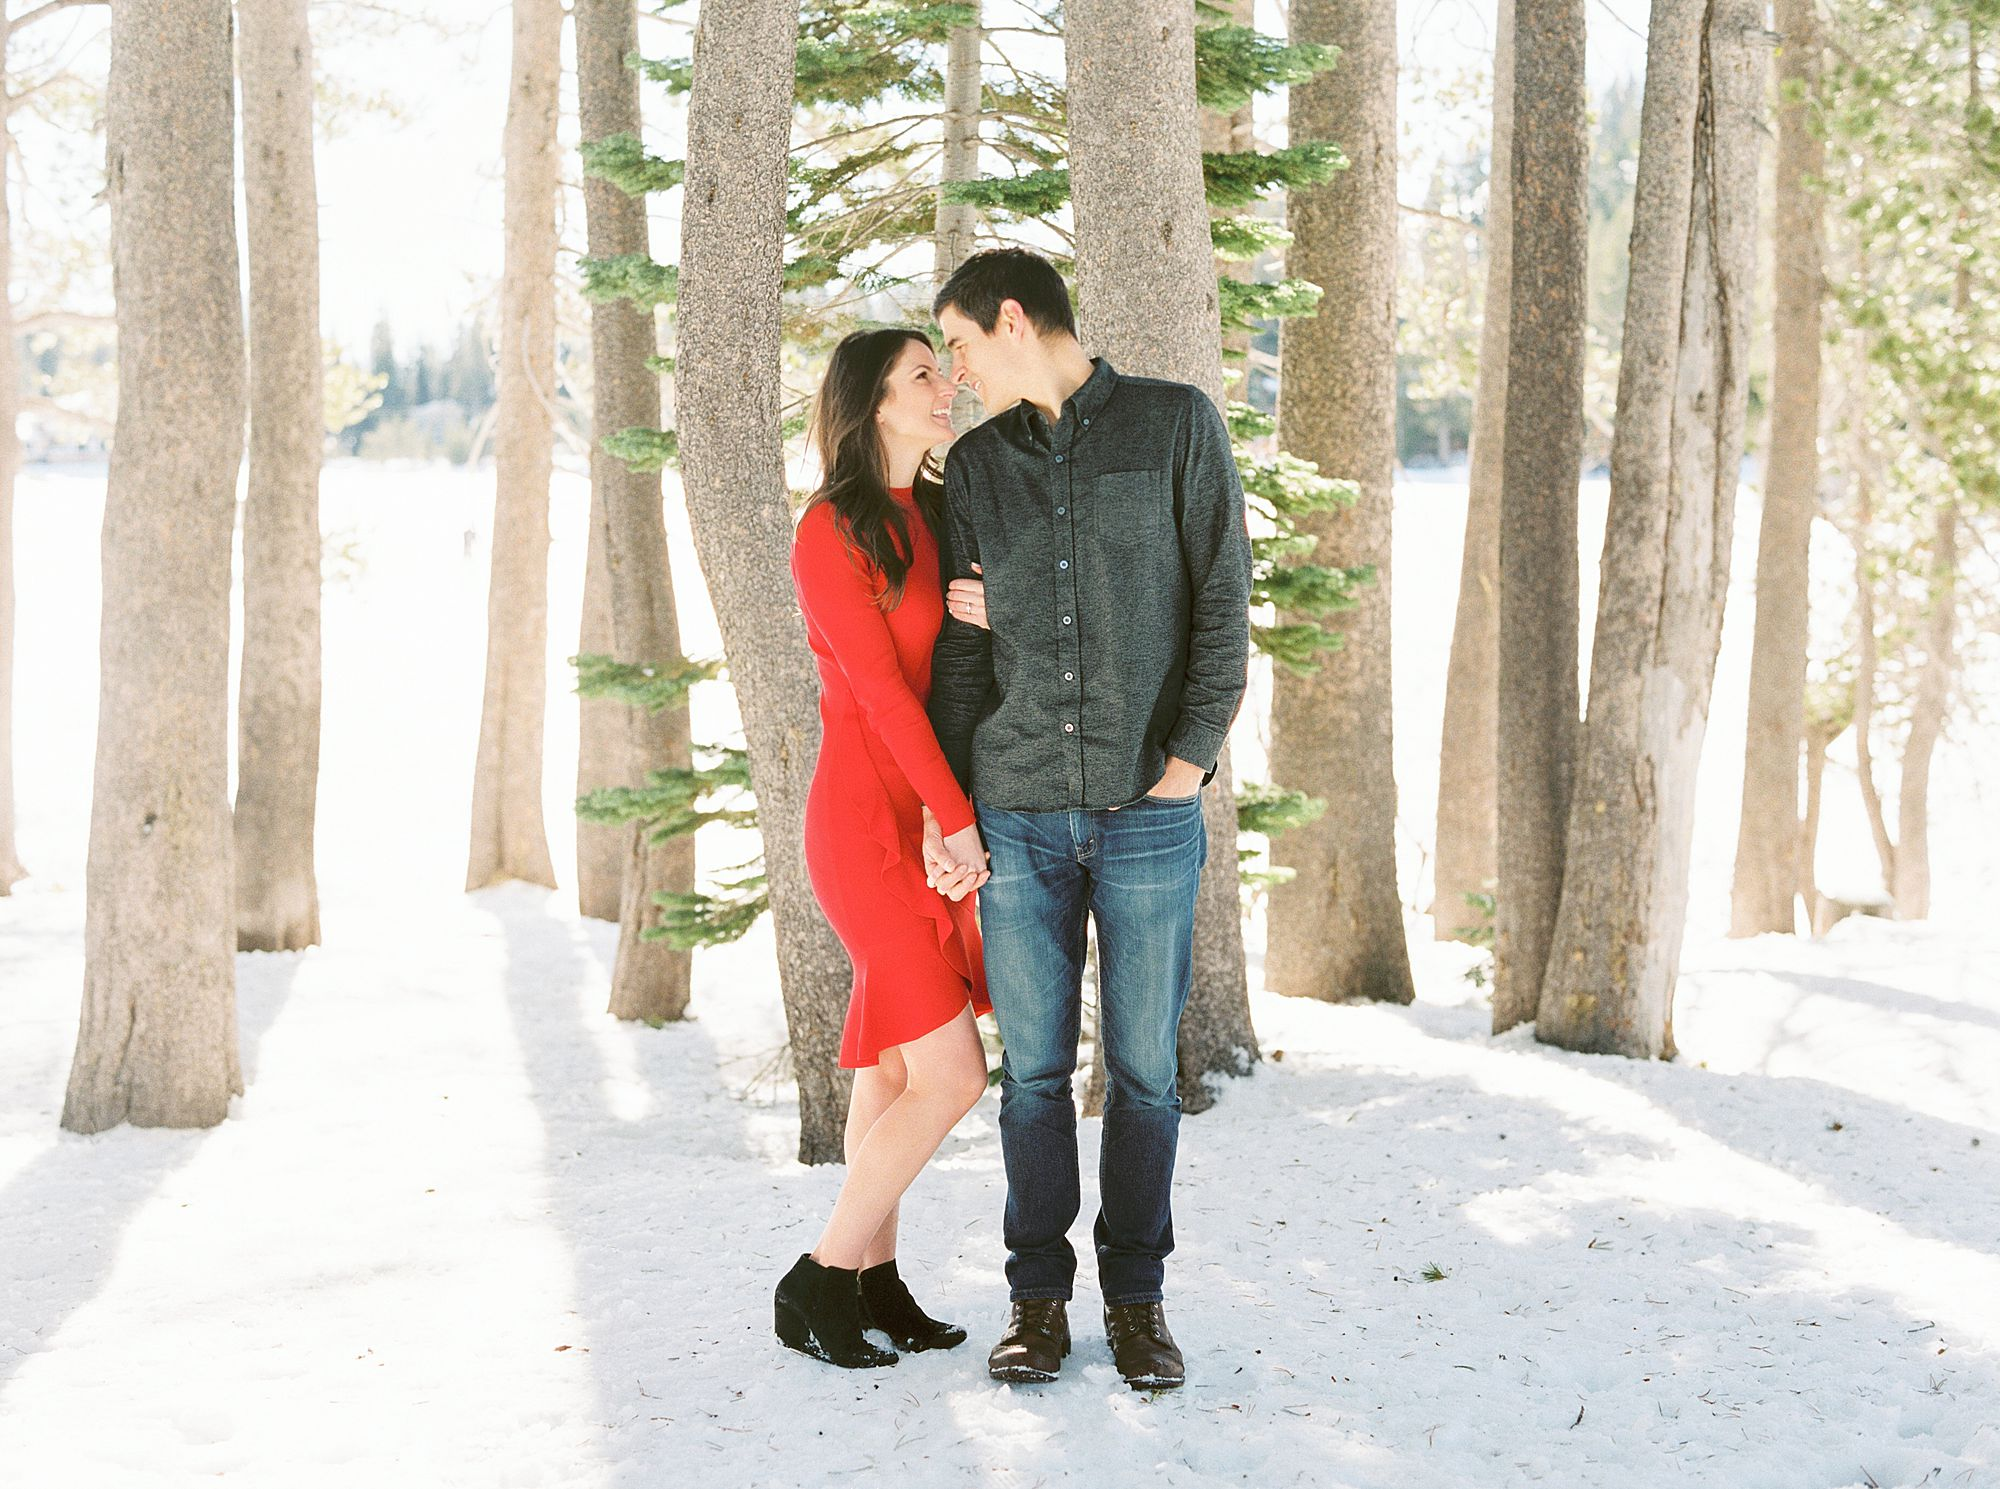 Snowy Tahoe Engagement Session - Alex and Kevin - Ashley Baumgartner - Tahoe Engagement Session - Tahoe Wedding Photographer - Tahoe Engagement Photos - Snow Engagement Photos_0026.jpg